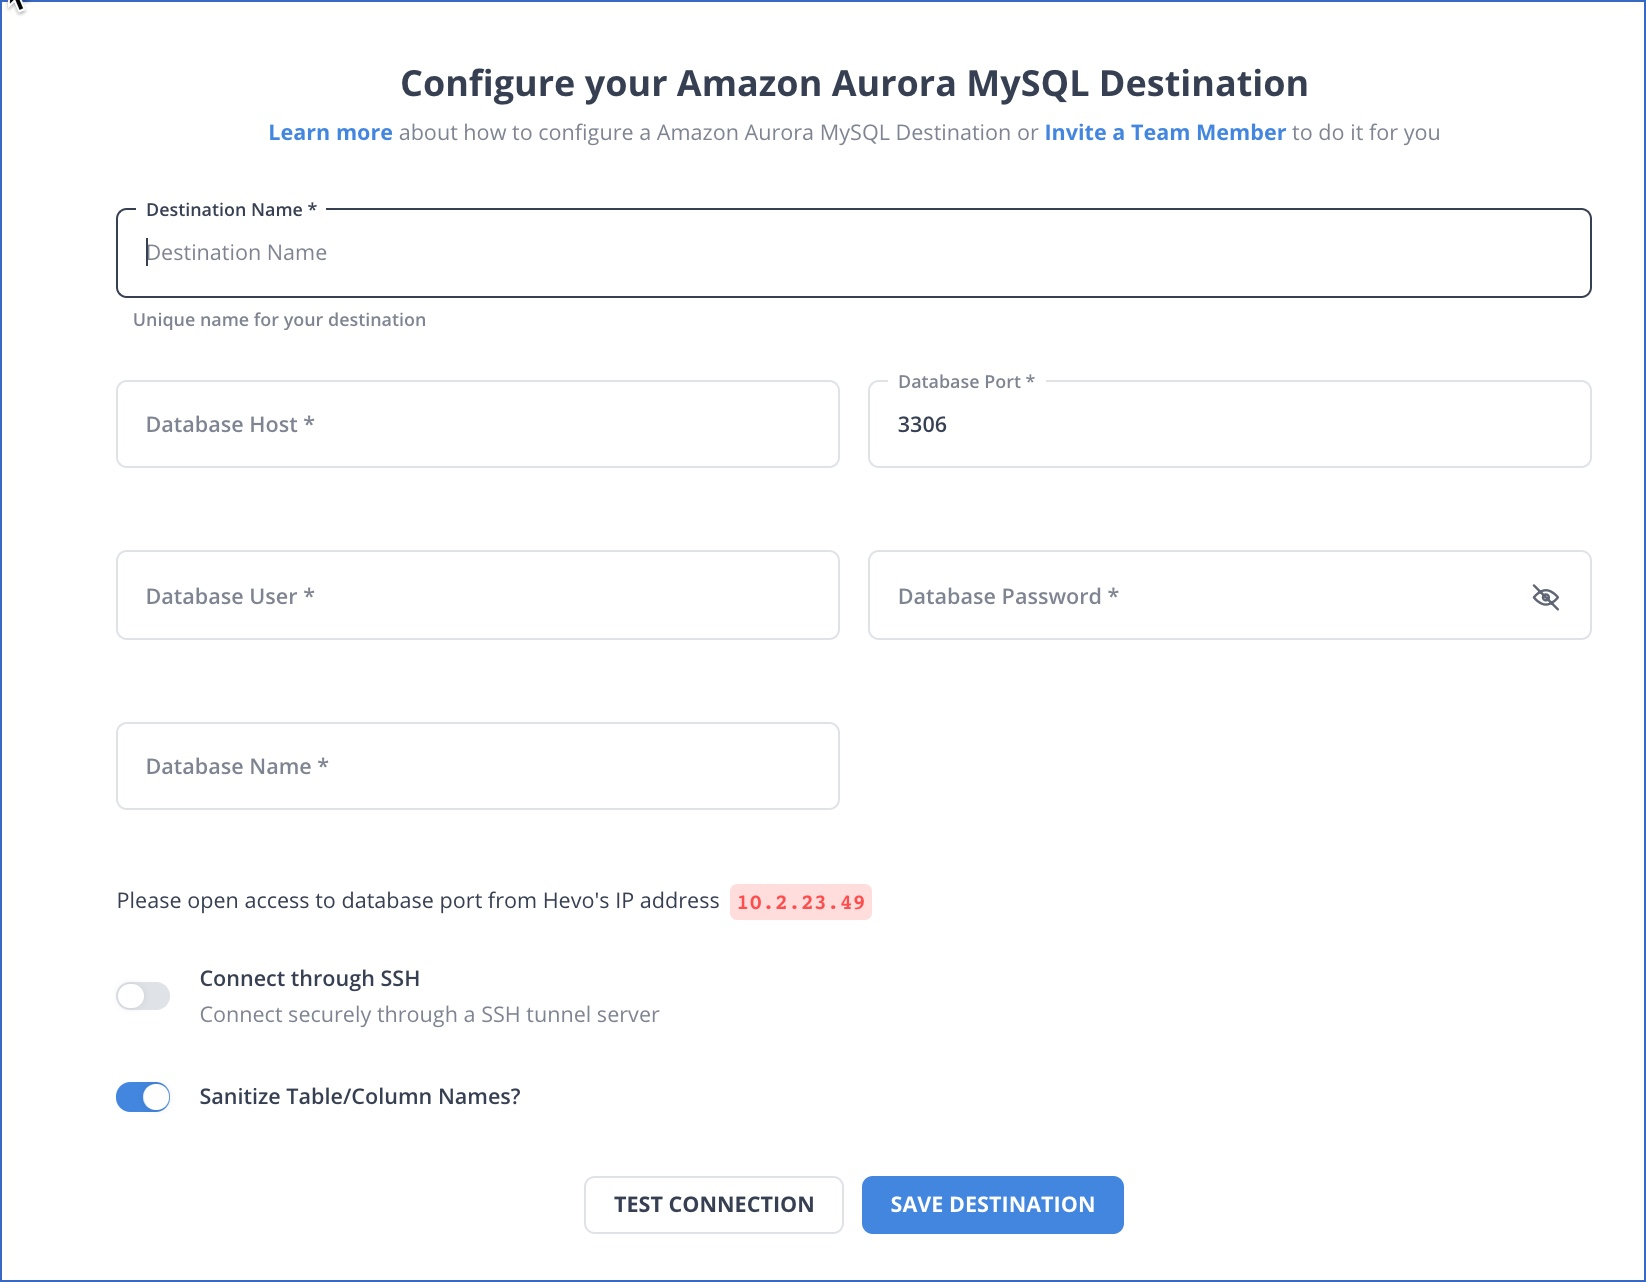 Amazon Aurora MySQL Destination settings